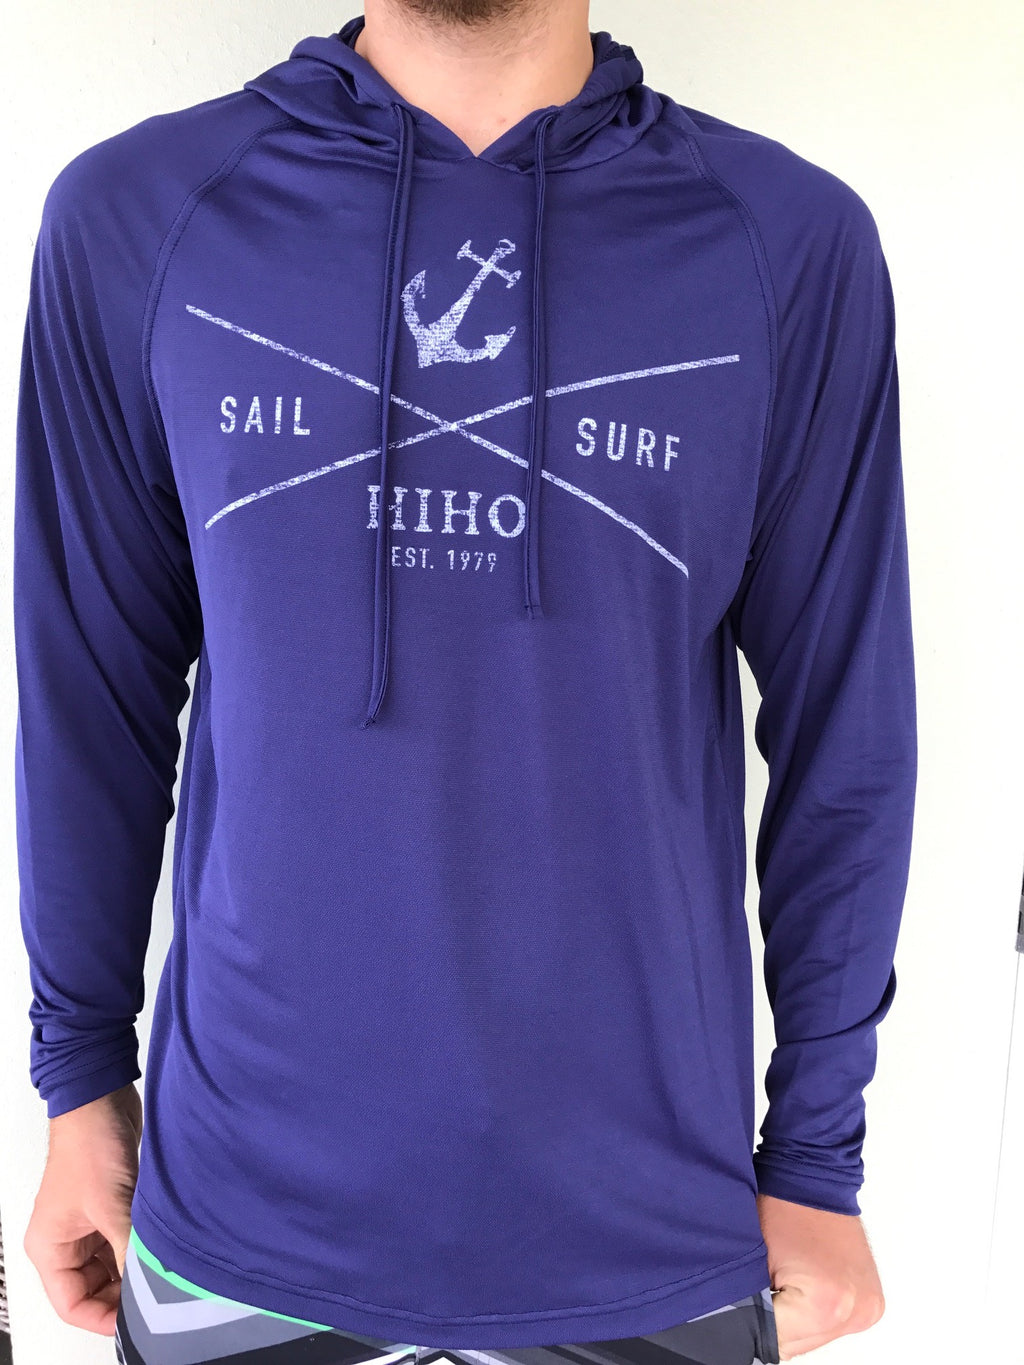 Sail & Surf Eli Hoody - Patriot Blue